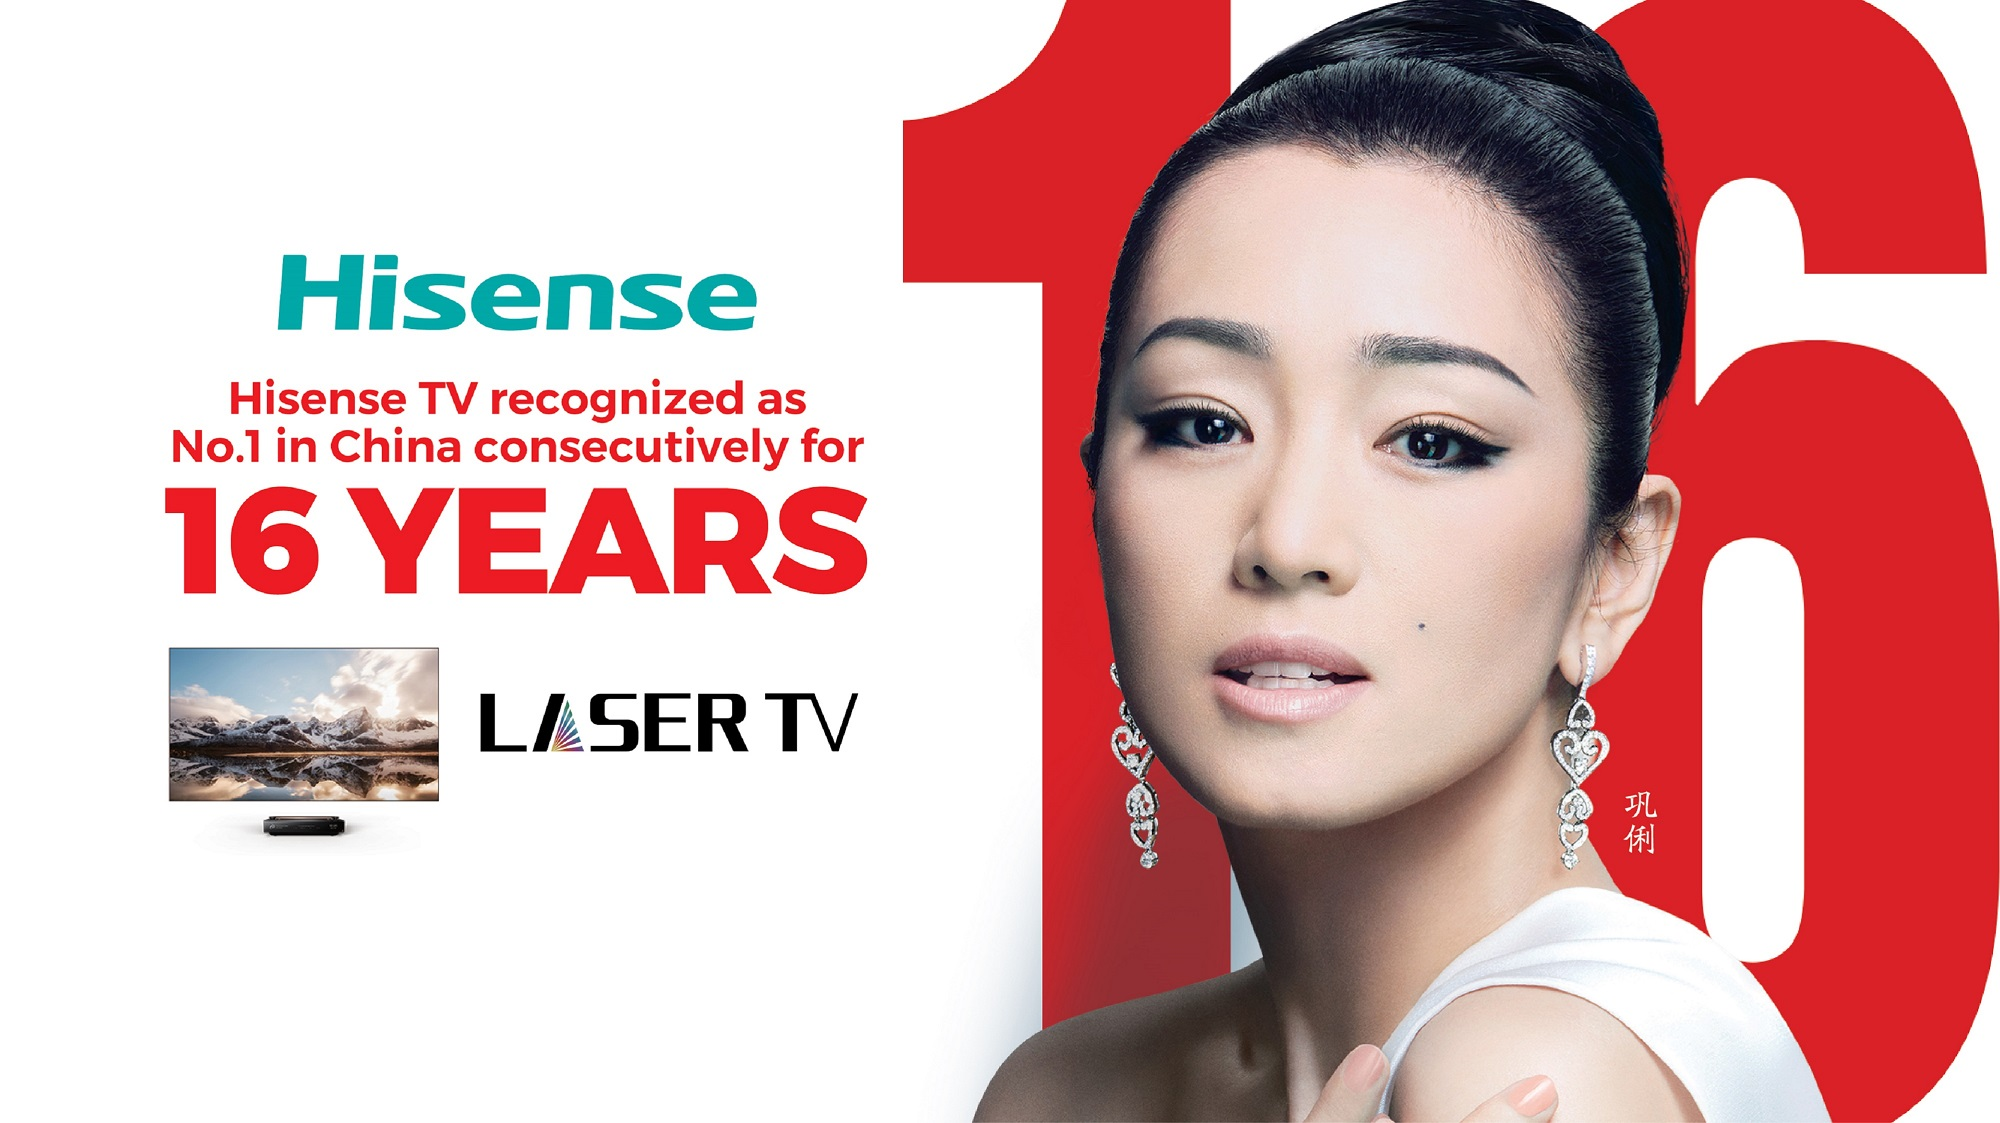 Hisense - Actress Gong Li As Global Brand Ambassador